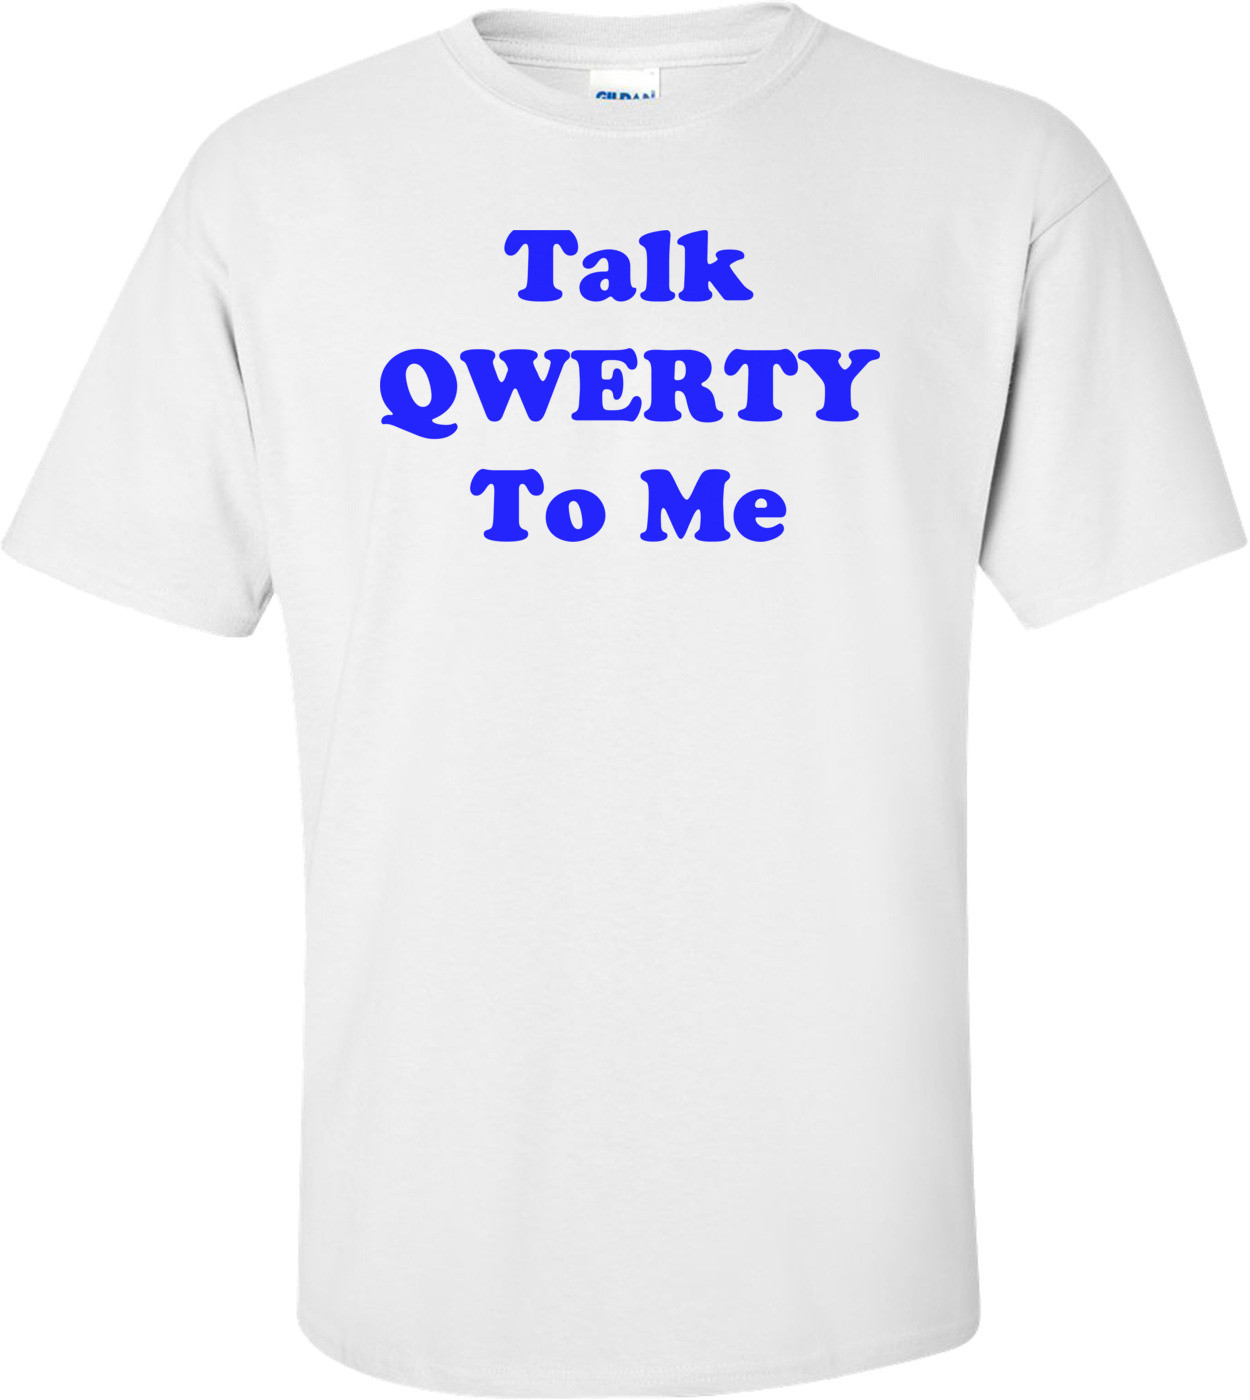 Talk QWERTY To Me Shirt